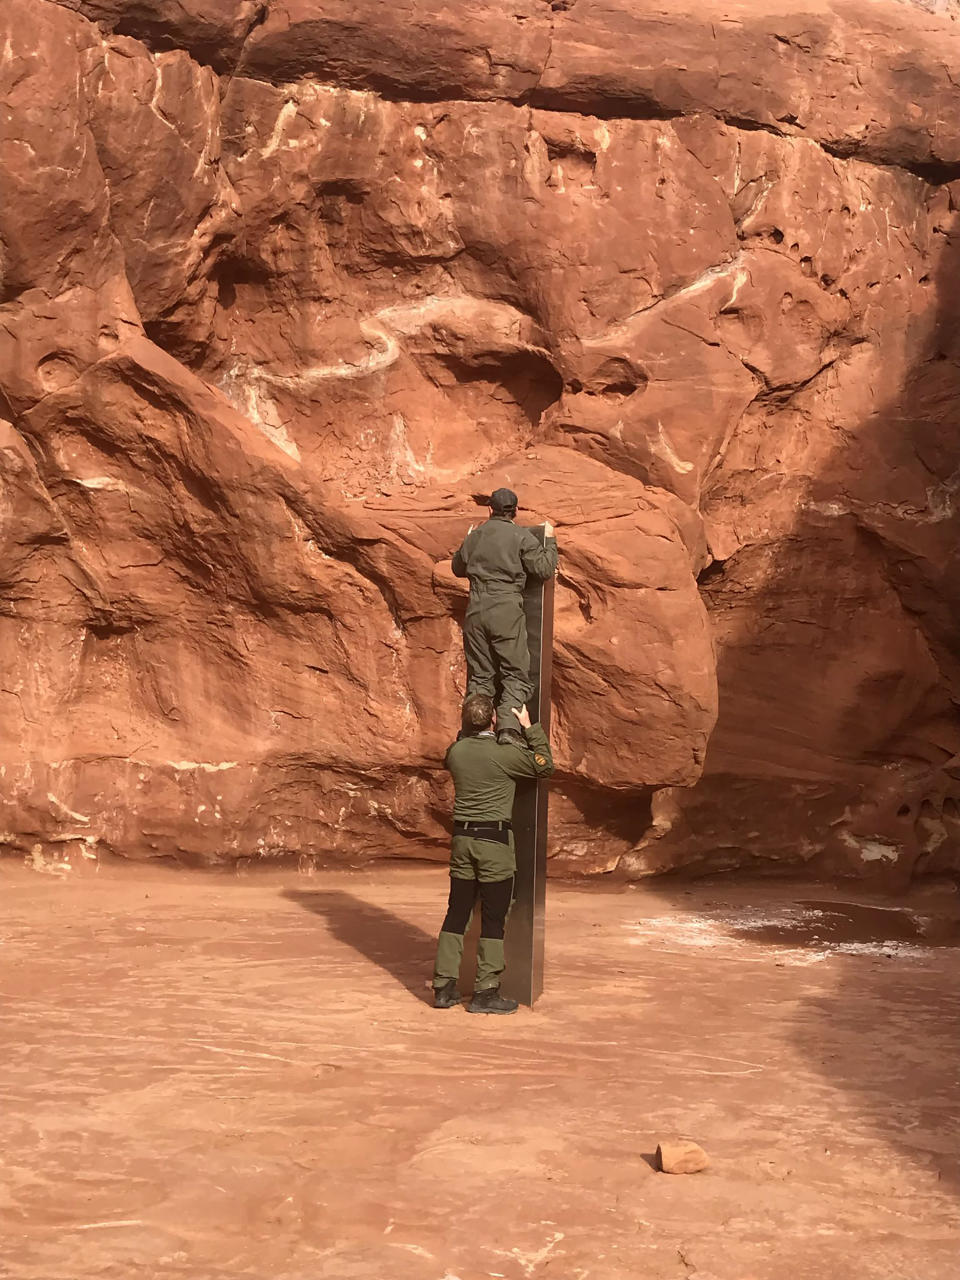 This Nov. 18, 2020 photo provided by the Utah Department of Public Safety shows Utah state workers checking out a metal monolith that was found installed in the ground in a remote area of red rock in Utah. The smooth, tall structure was found during a helicopter survey of bighorn sheep in southeastern Utah, officials said Monday. State workers from the Utah Department of Public Safety and Division of Wildlife Resources spotted the gleaming object from the air and landed nearby to check it out. The exact location is so remote that officials are not revealing it publicly, worried that people might get lost or stranded trying to find it and need to be rescued. (Utah Department of Public Safety via AP)